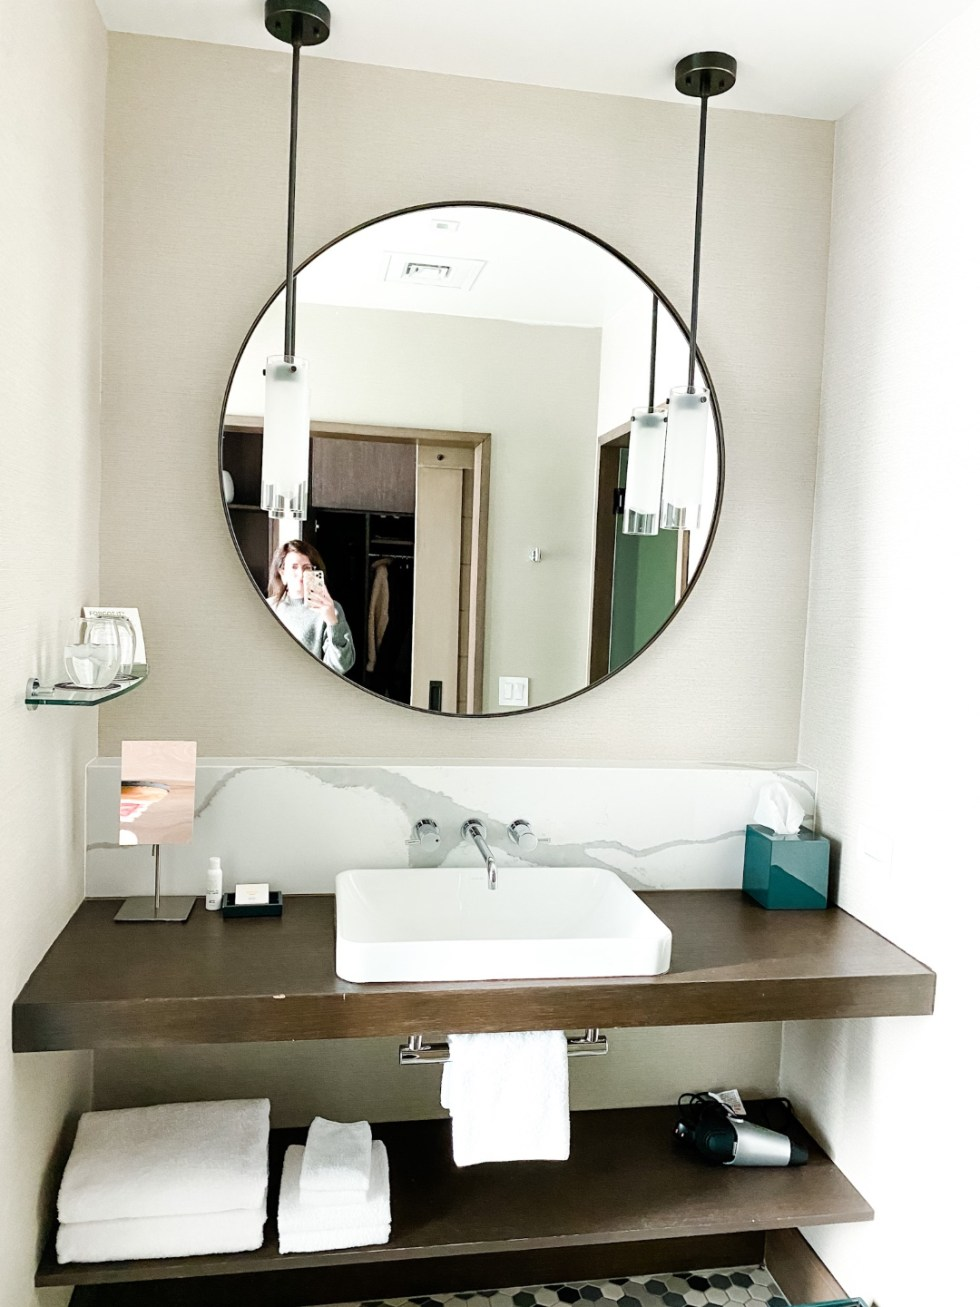 Christmas in Asheville: a Weekend Getaway During the Holidays - I'm Fixin' To - @imfixintoblog |Christmas in Asheville NC by popular NC lifestyle blog, I'm Fixin' To: image of a bathroom vanity with a round black mirror.